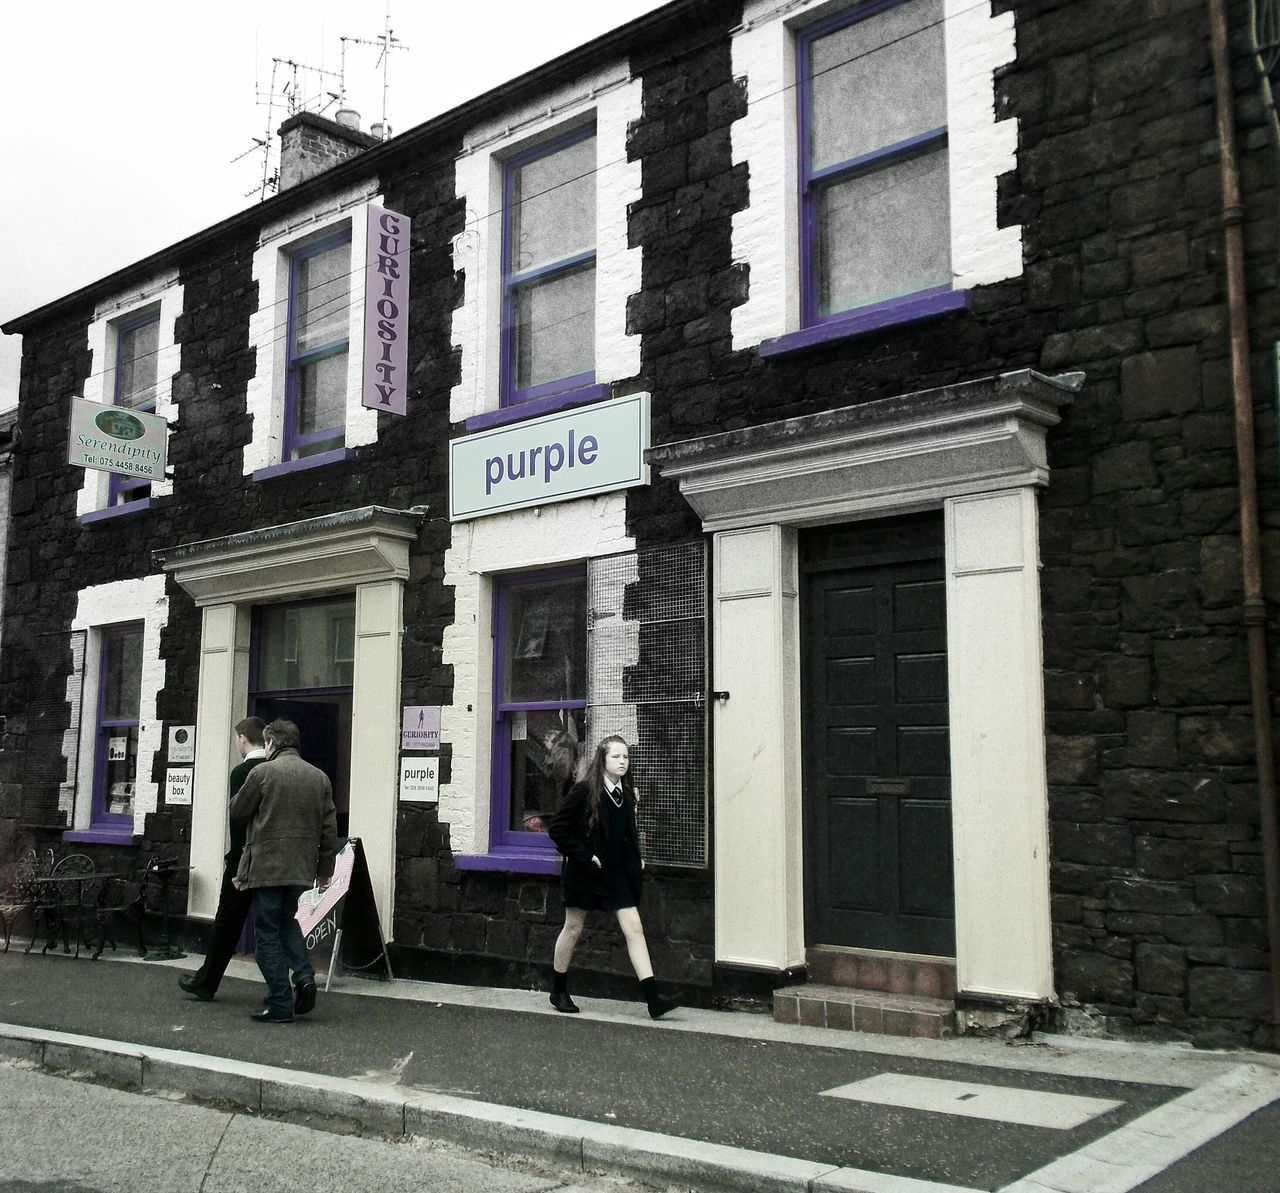 Purple serendipity... Travel Travel Photography Ontheroad Ireland PassingBy Catch The Moment Serendipity Purple Color People Walking  Contrast Black And White Photography Colour Of Life Love People And Places